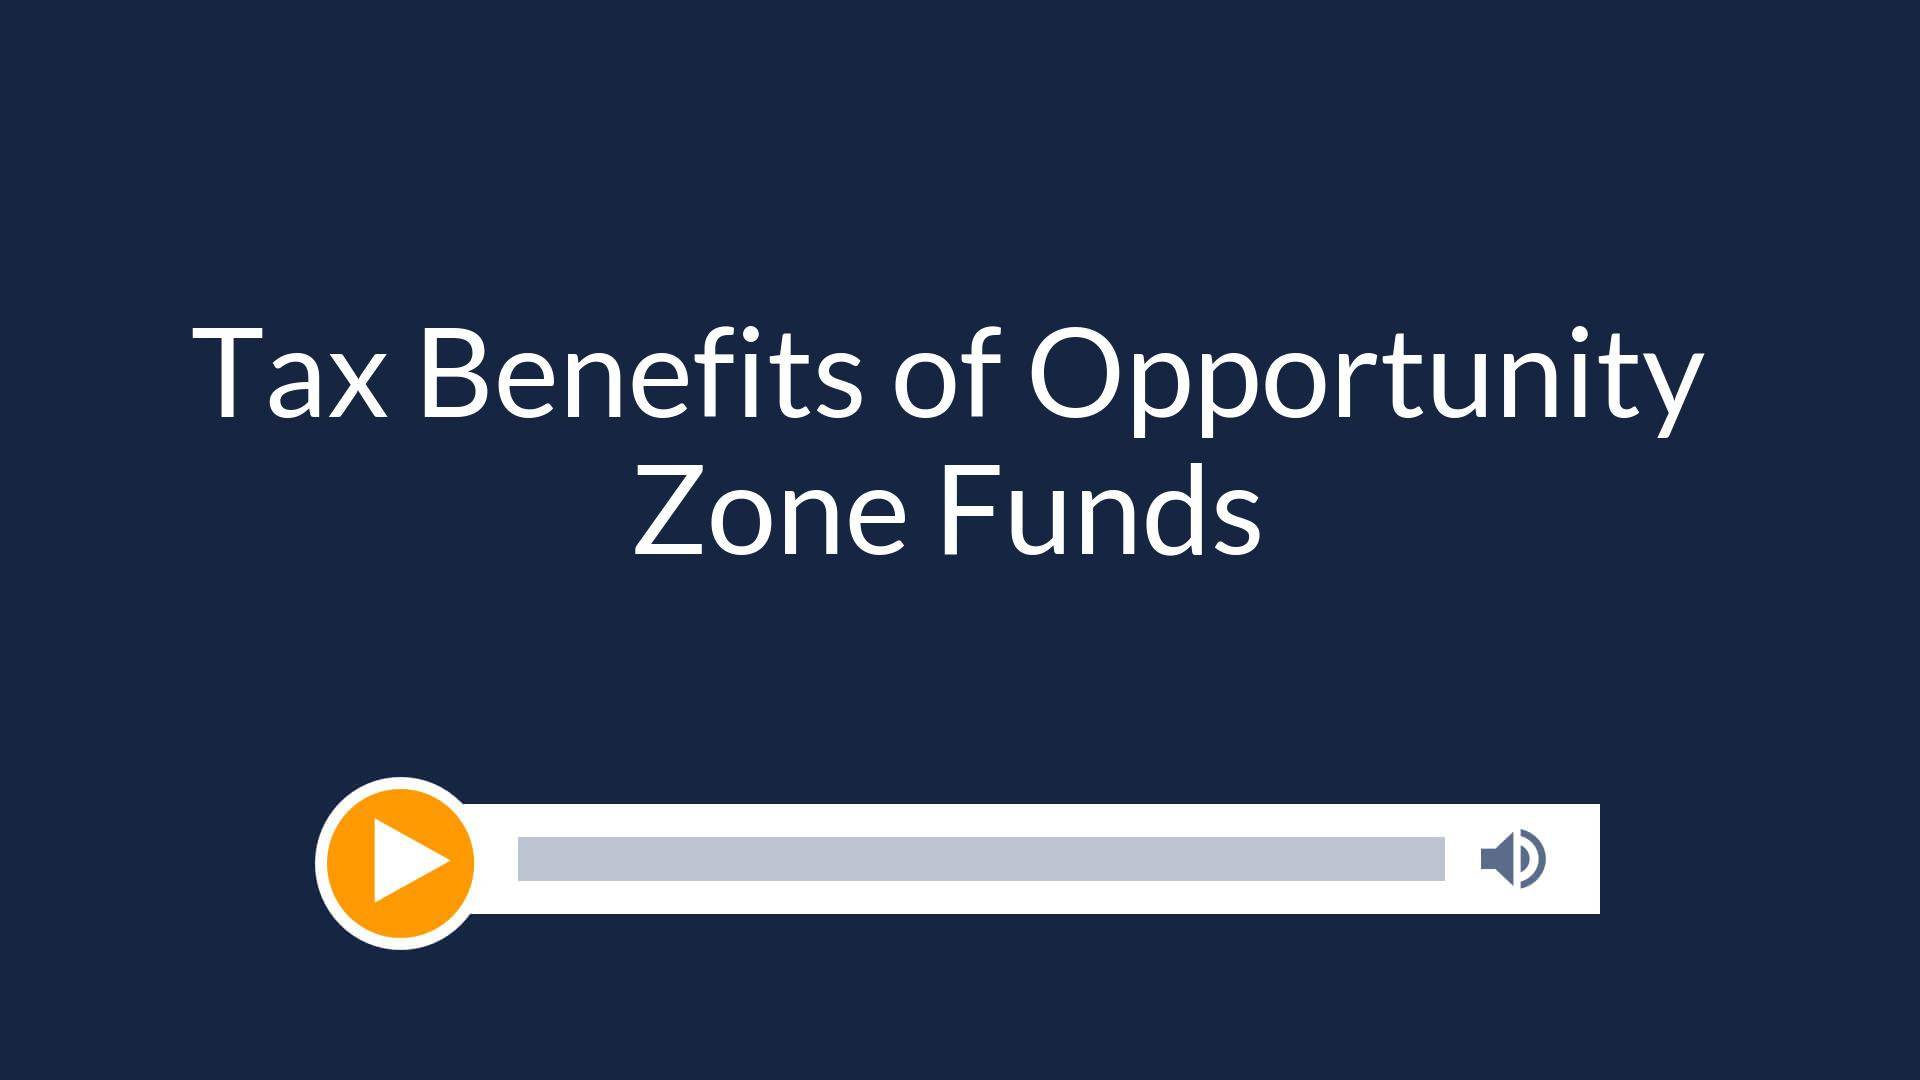 Tax Benefits of Opportunity Zone Funds